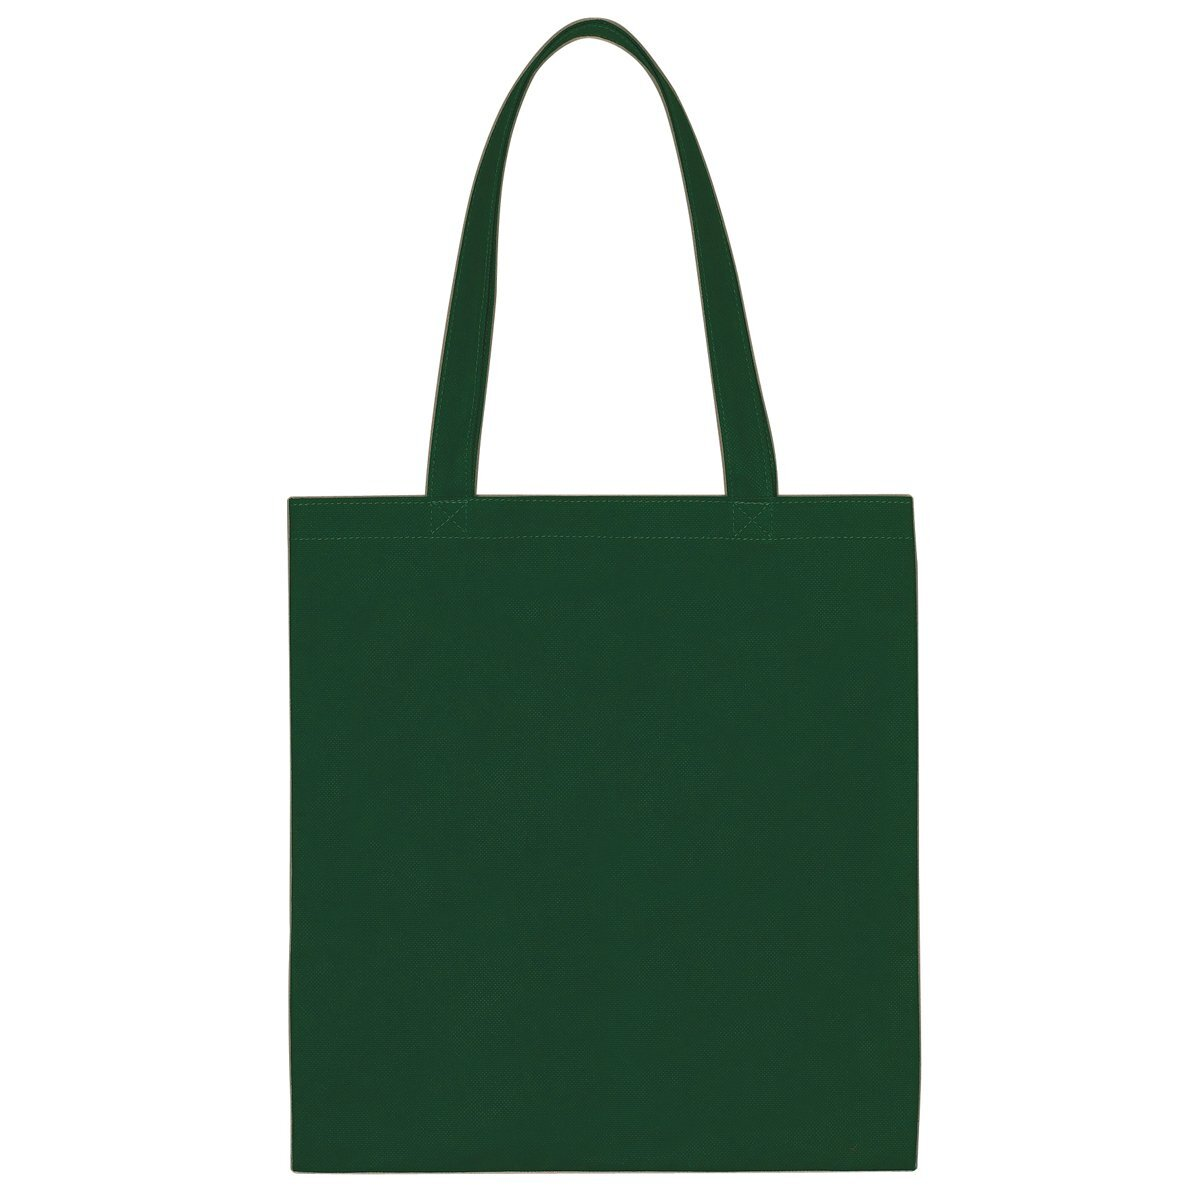 Economy Non-Woven Tote - Free Set Up Charges!